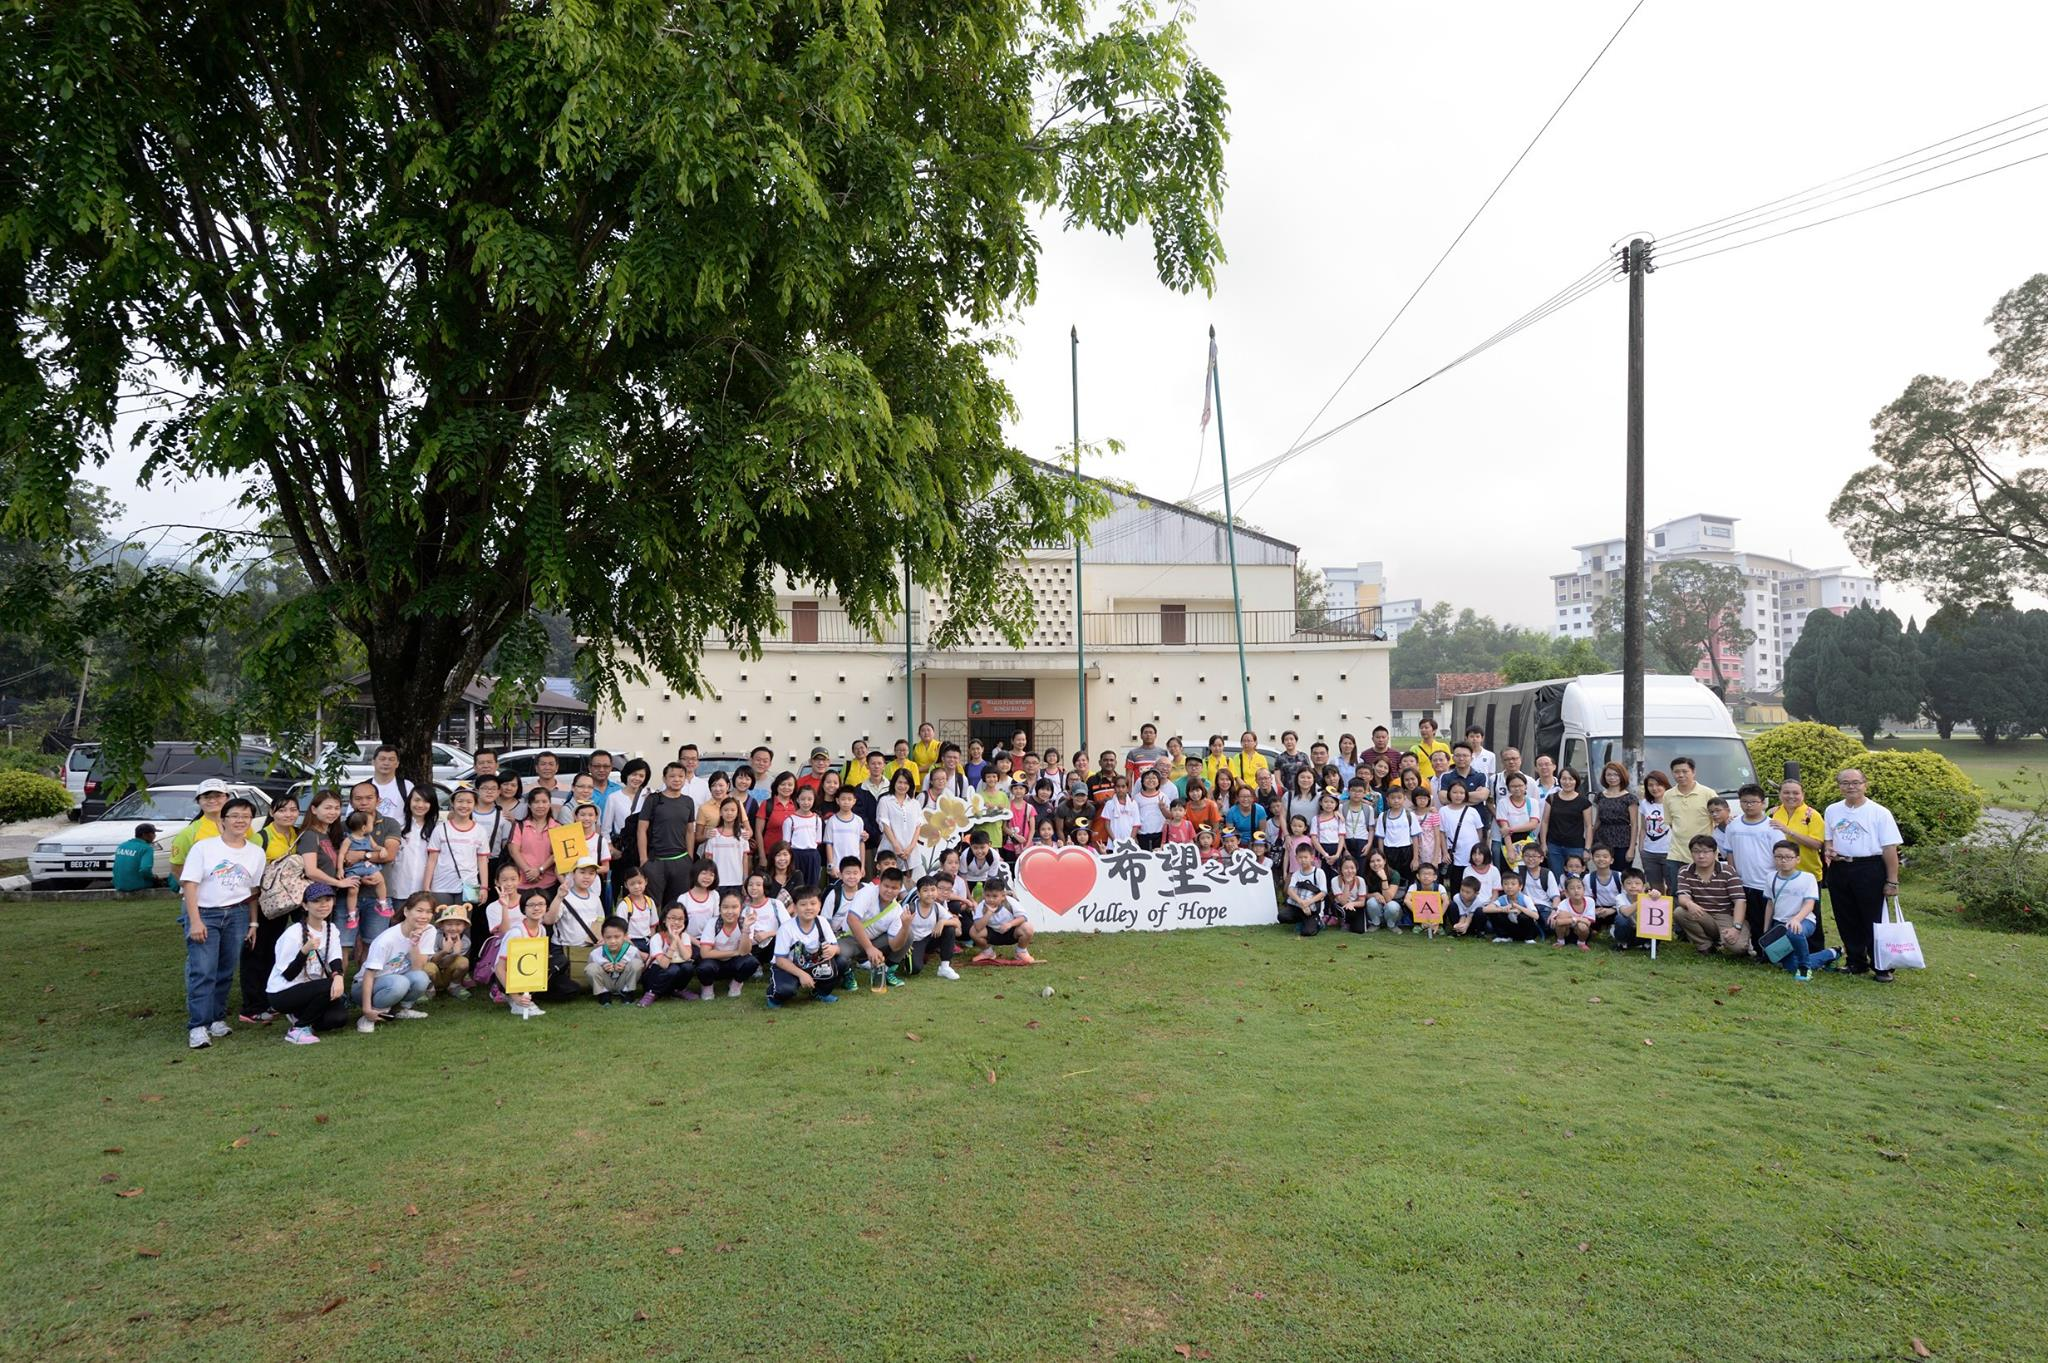 Group photo of the students and their teachers after the heritage tour. (photo by Stanley Woo)